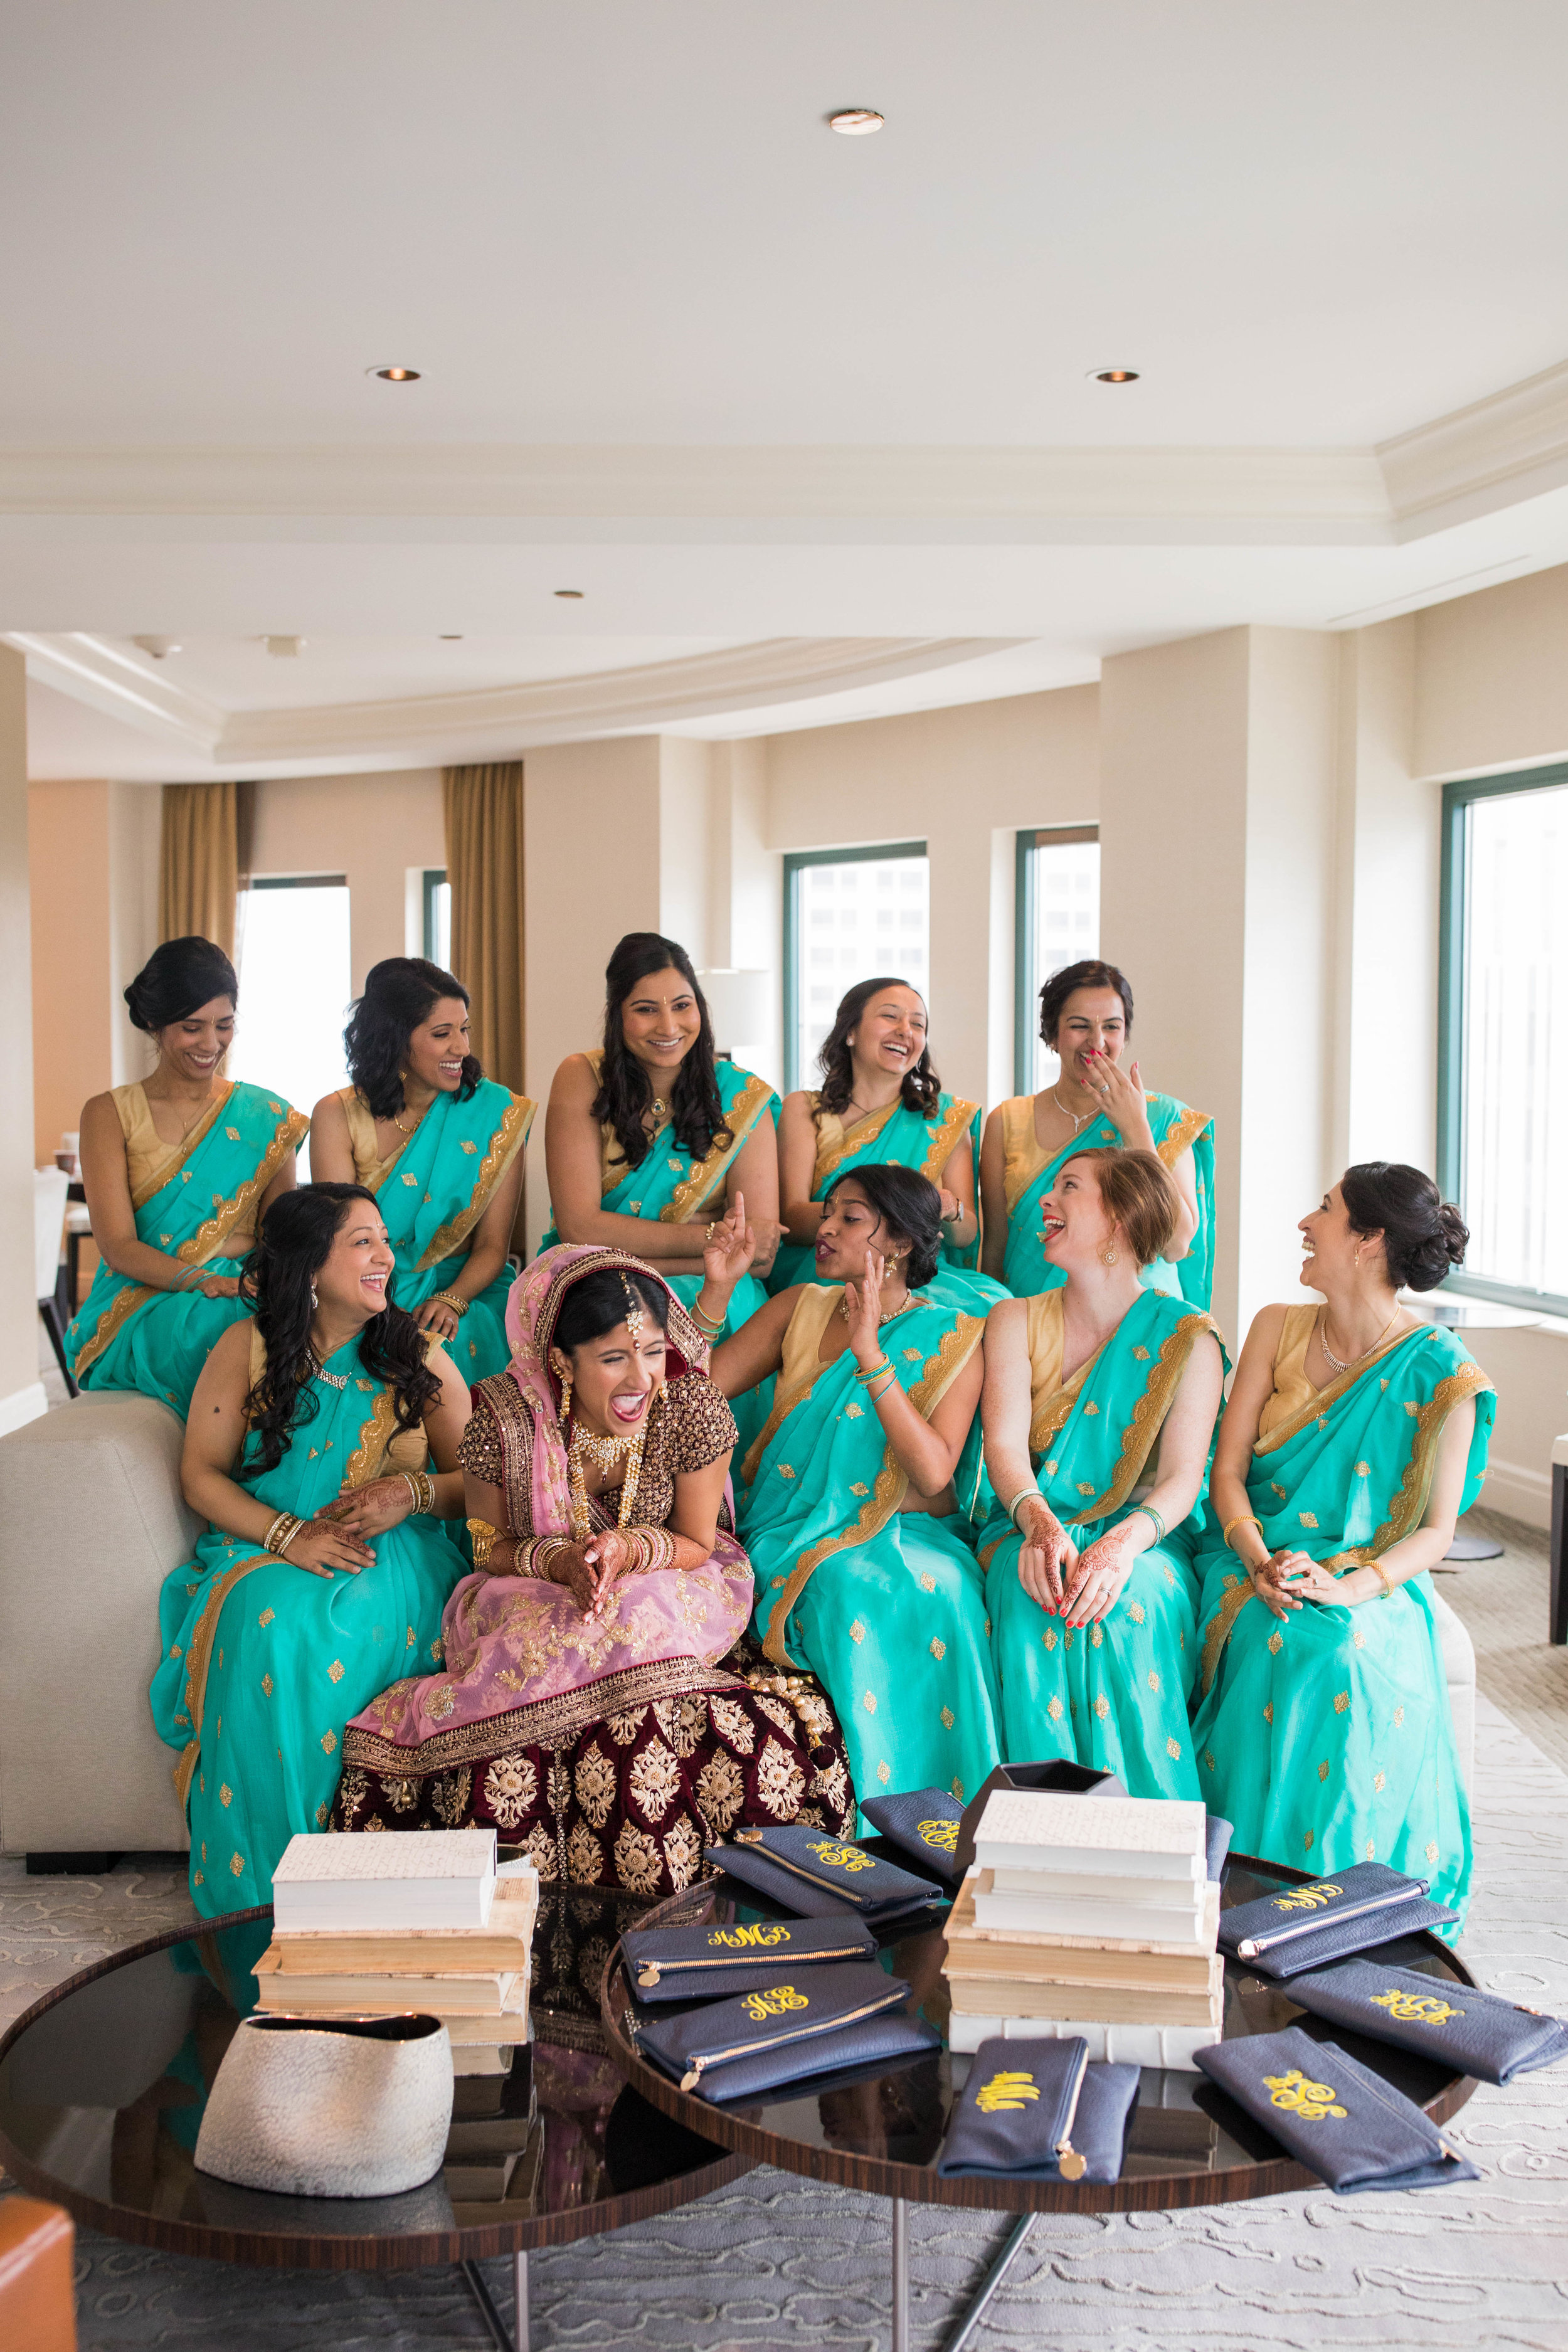 LeCapeWeddings - Chicago South Asian Wedding -62.jpg